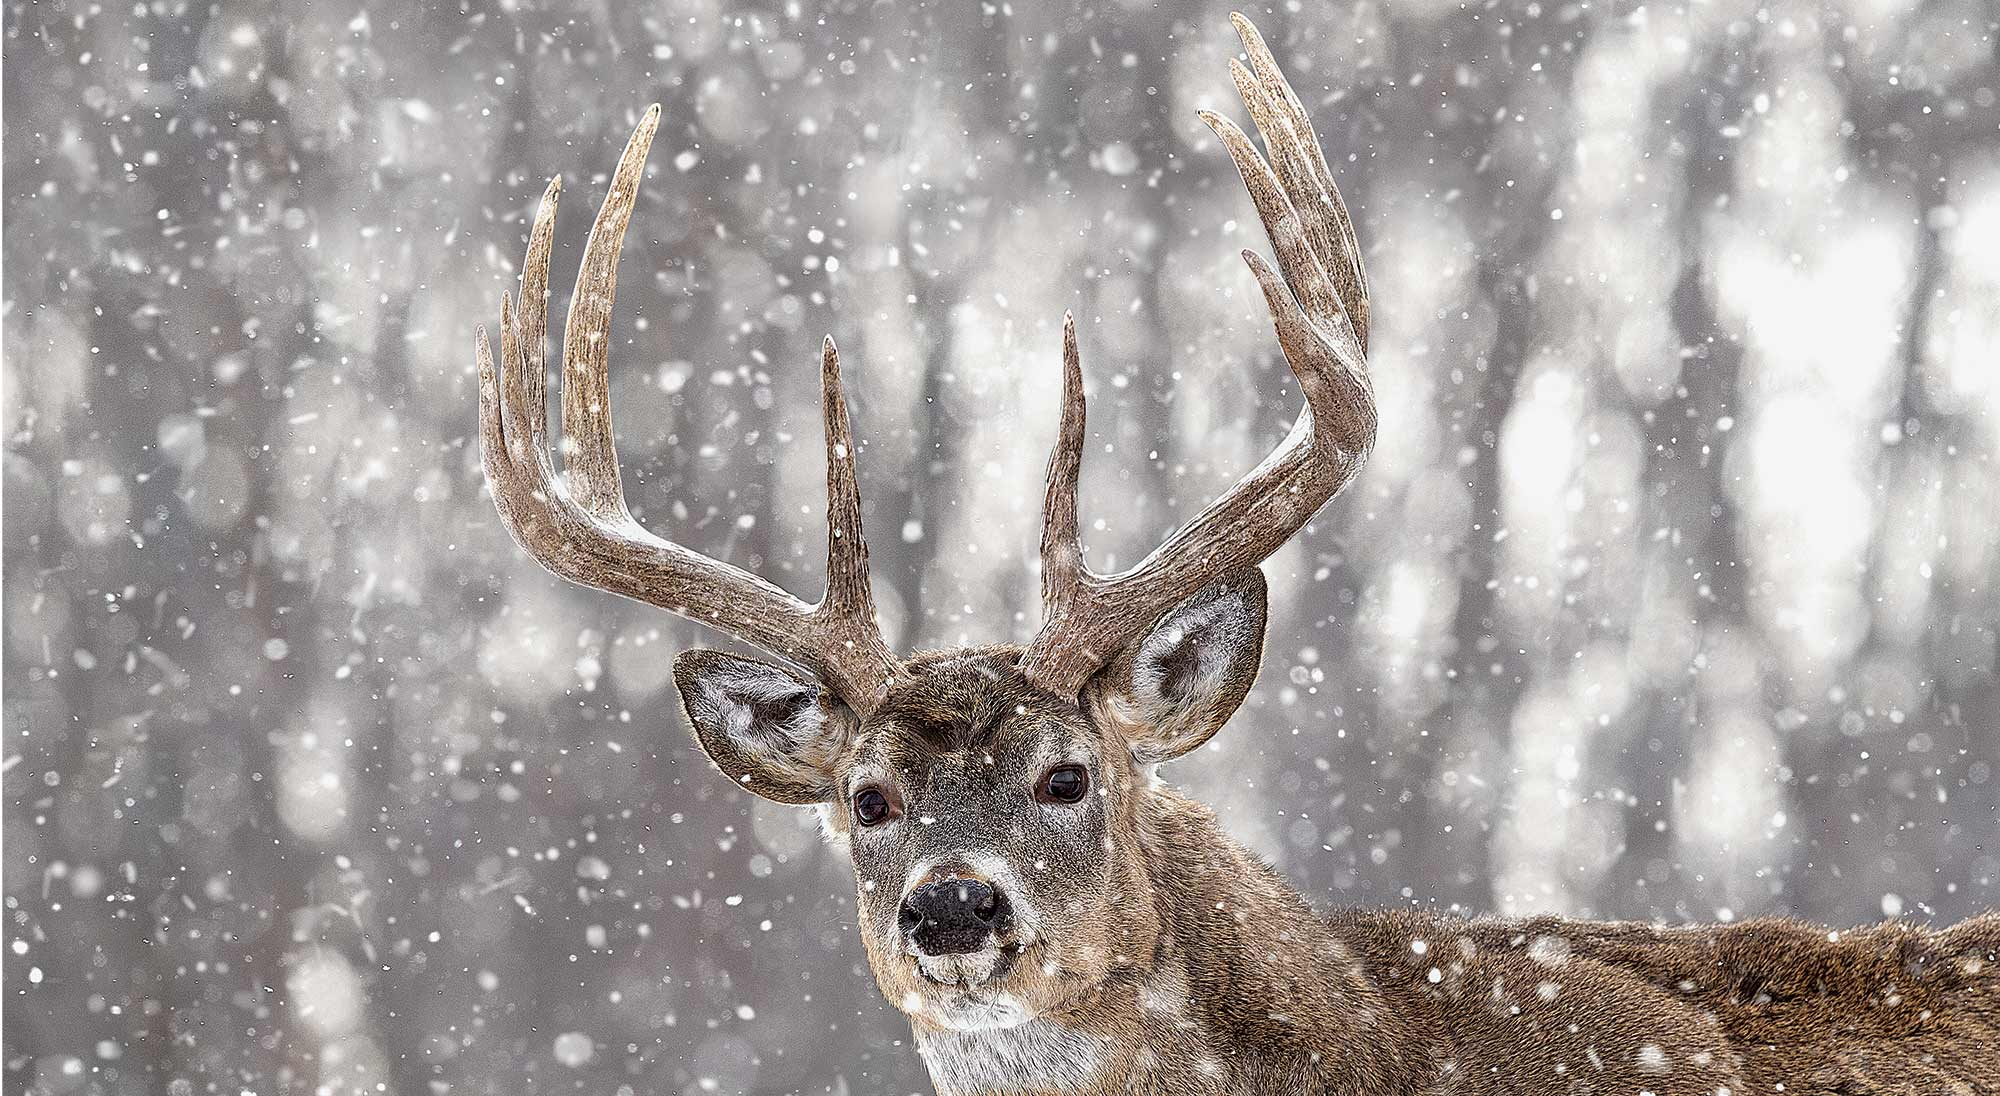 10 point whitetail buck in the snow